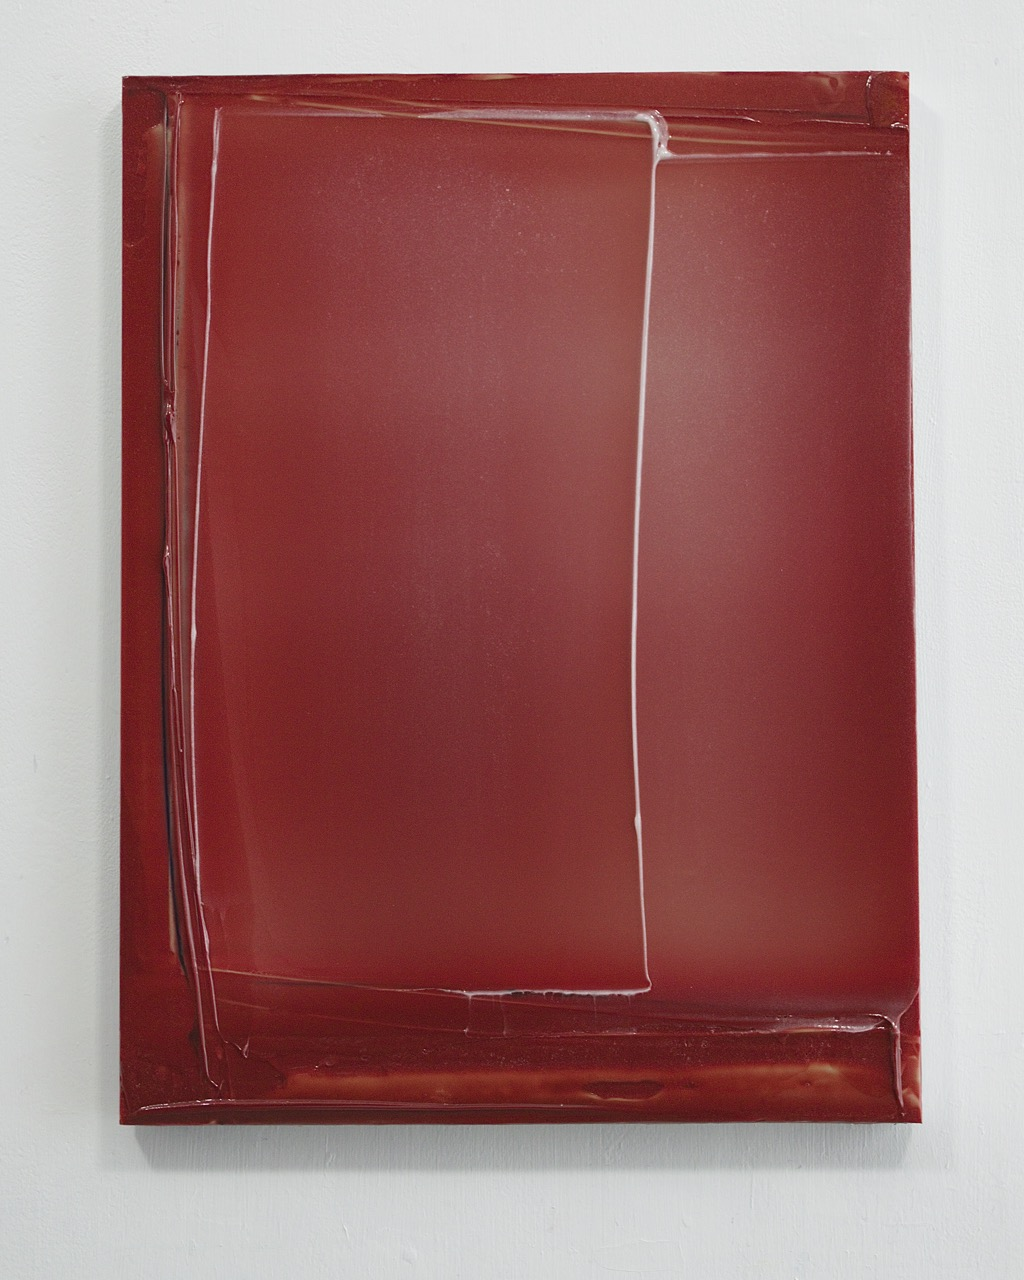 Unitled (Red Composition), 2013, 60x45cm.jpg